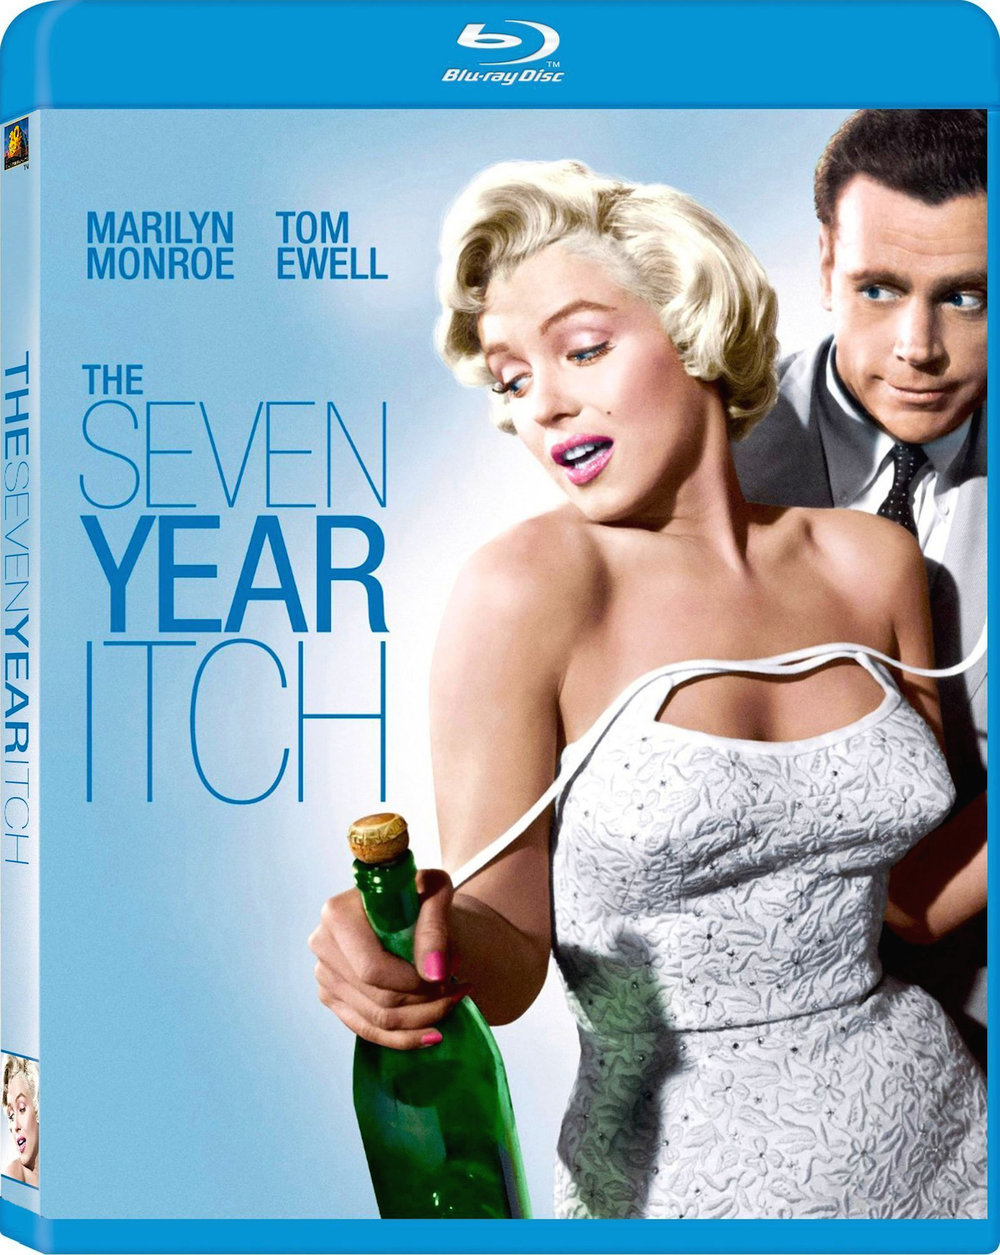 The Seven Year Itch.jpg